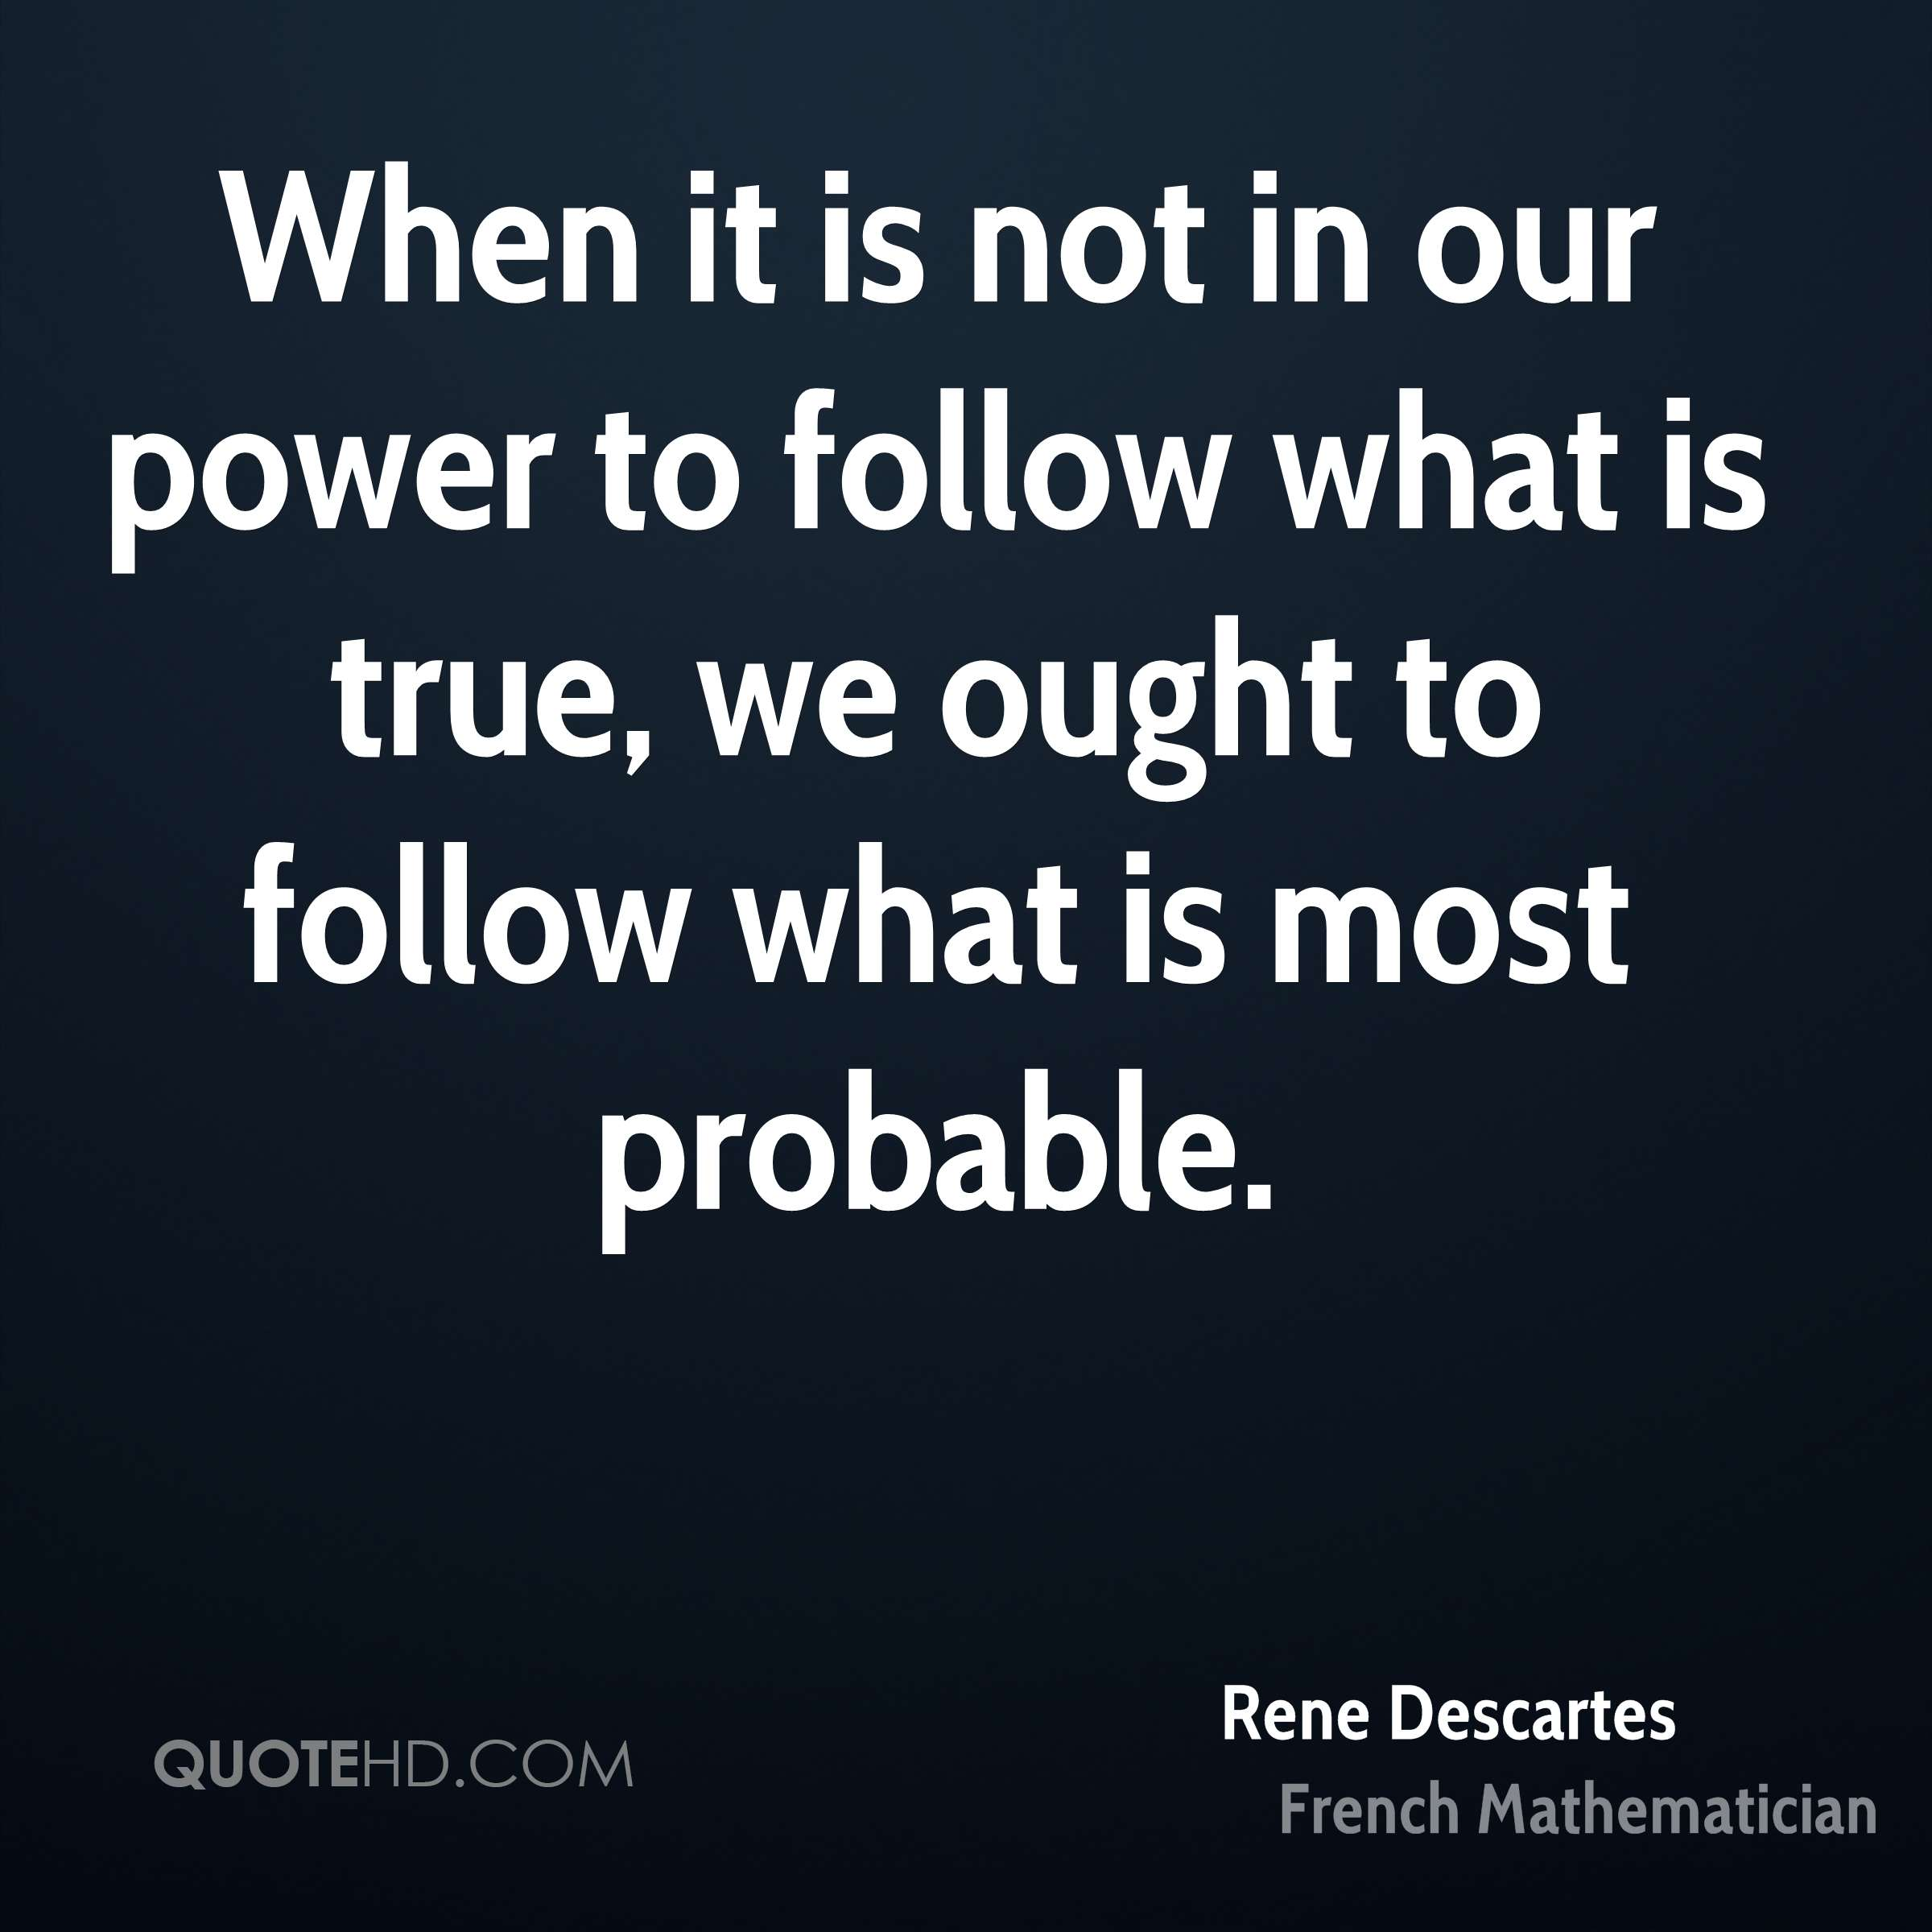 When it is not in our power to follow what is true, we ought to follow what is most probable.